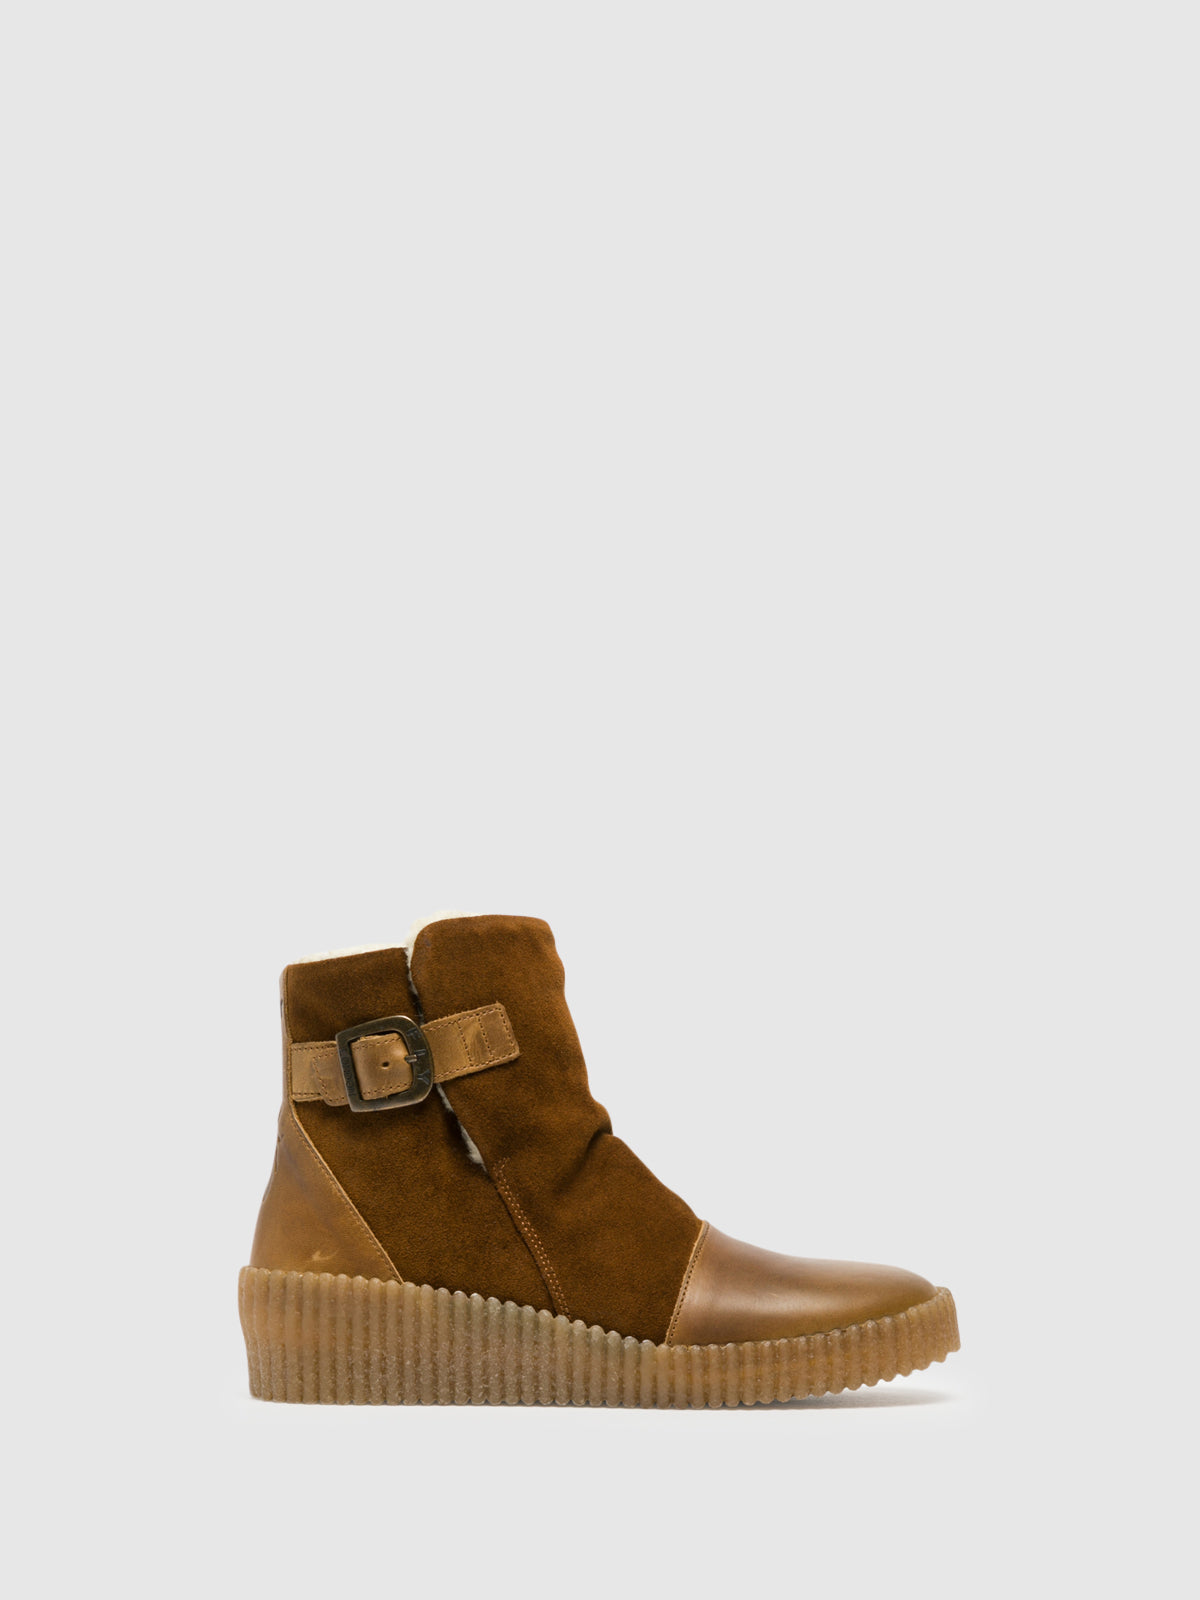 Fly London Stiefel im Eskimo-Stil in Camel